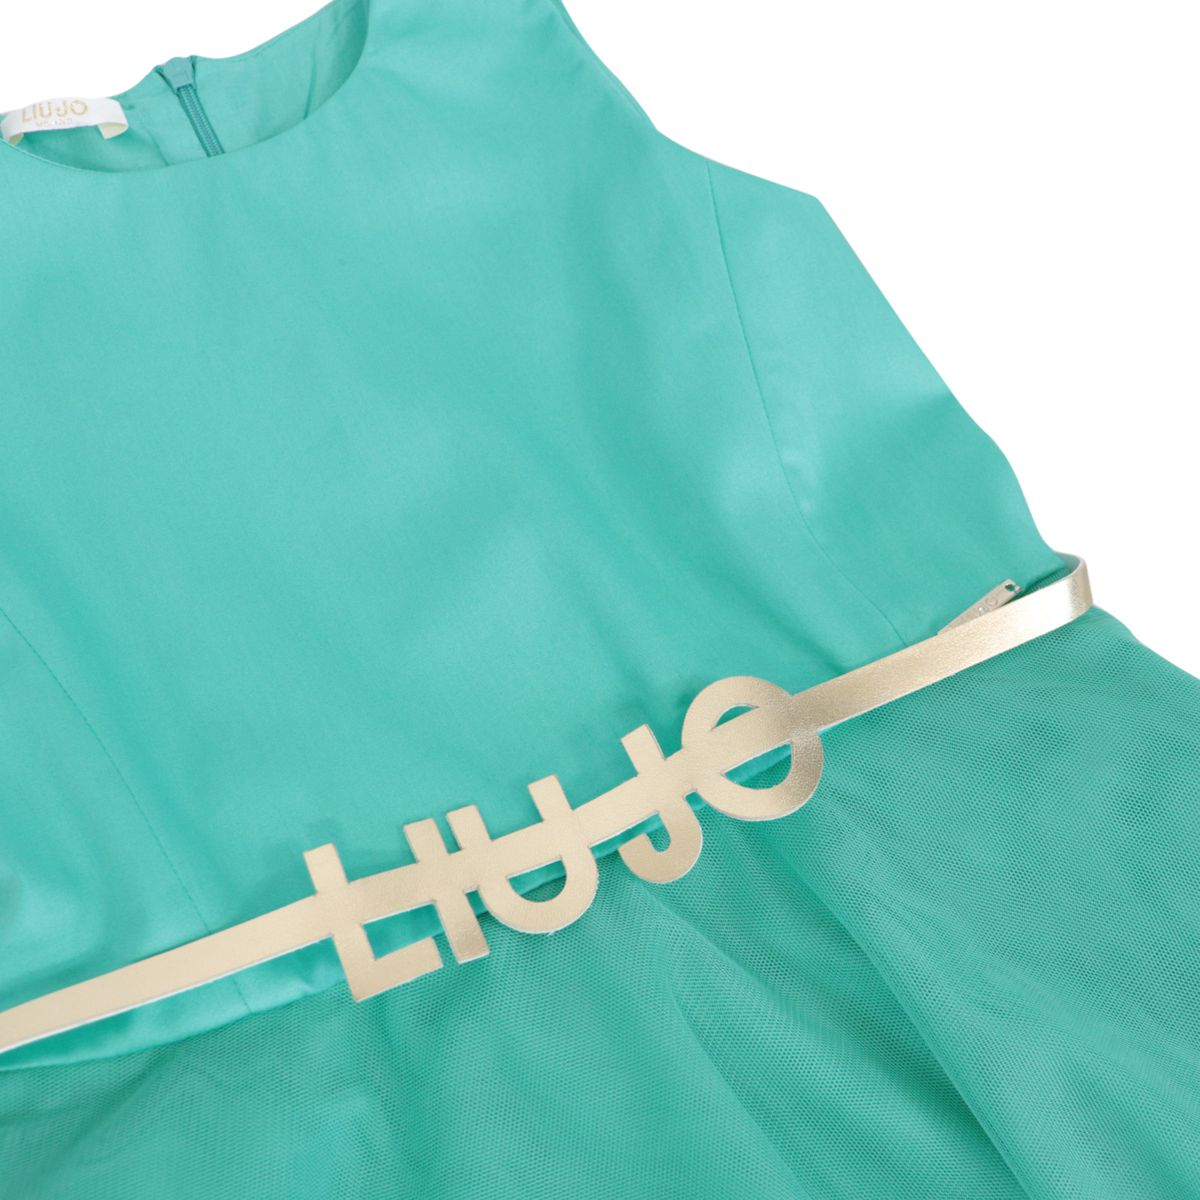 Cotton dress with tulle skirt and logo belt Green water Liu Jo